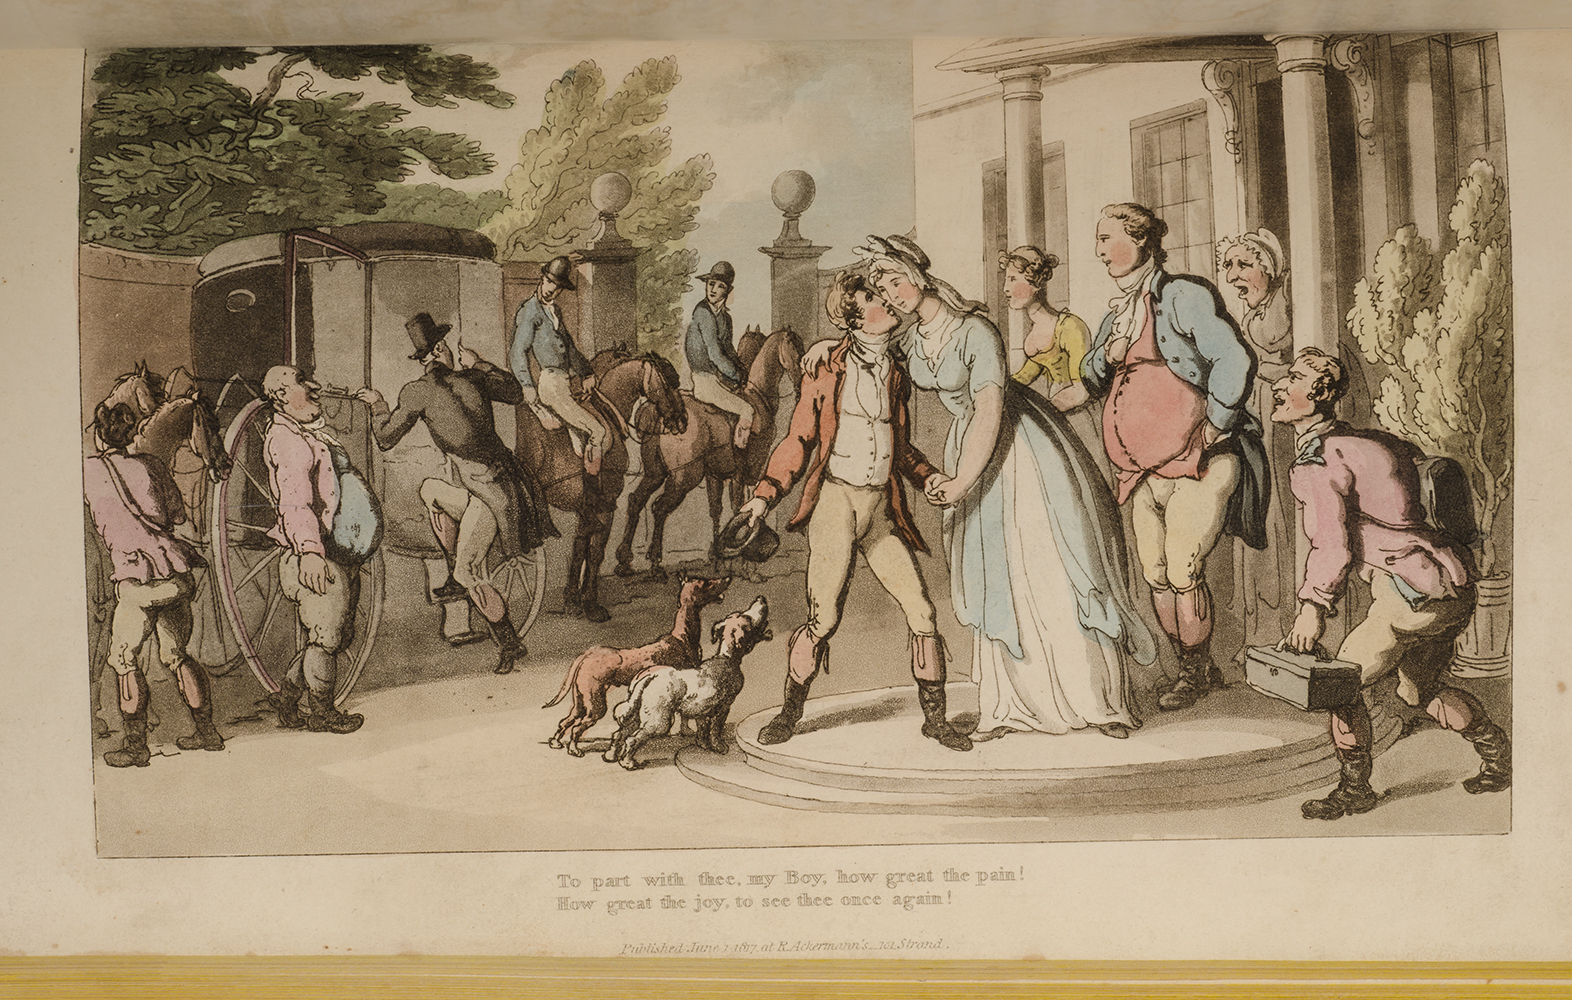 ROWLANDSON, THOMAS; COMBE, WILLIAM - Dance of Life, the